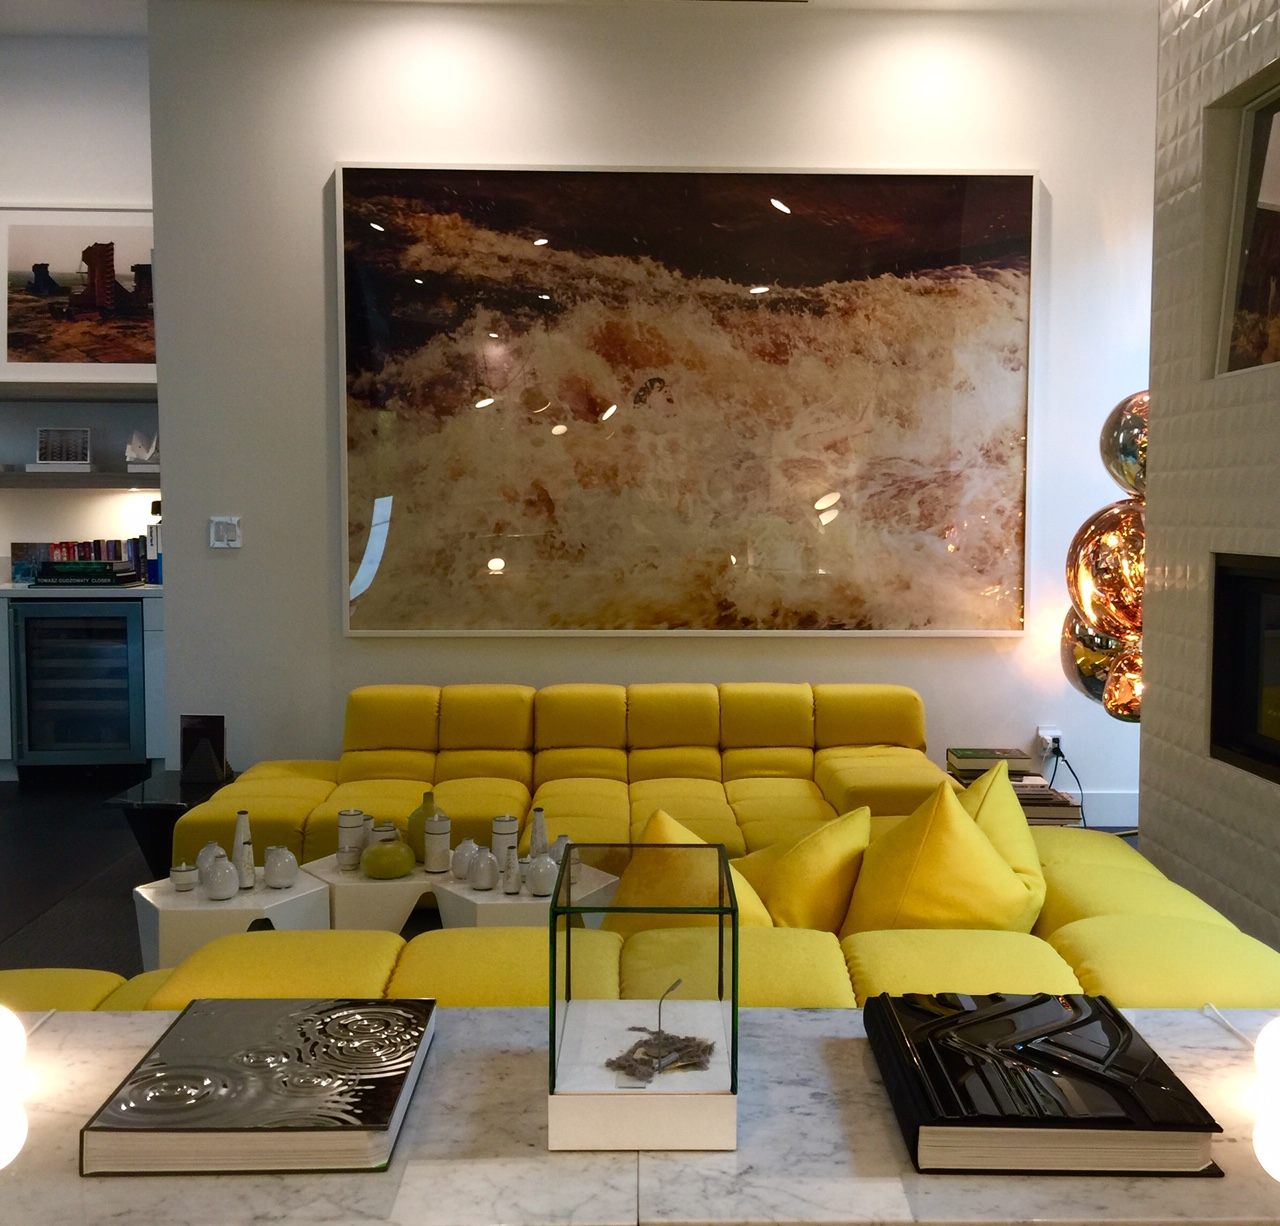 Taschen artist editions for Zaha Hadid and Olafur Eliasson, on the two sides of the center sculpture by Johannesburg Albers. Photo on the left (partial) by Edward Burtynsky. A work by Ryan McGinley above the sofa. Courtesy of Melissa de la Cruz and Michael Johnston.